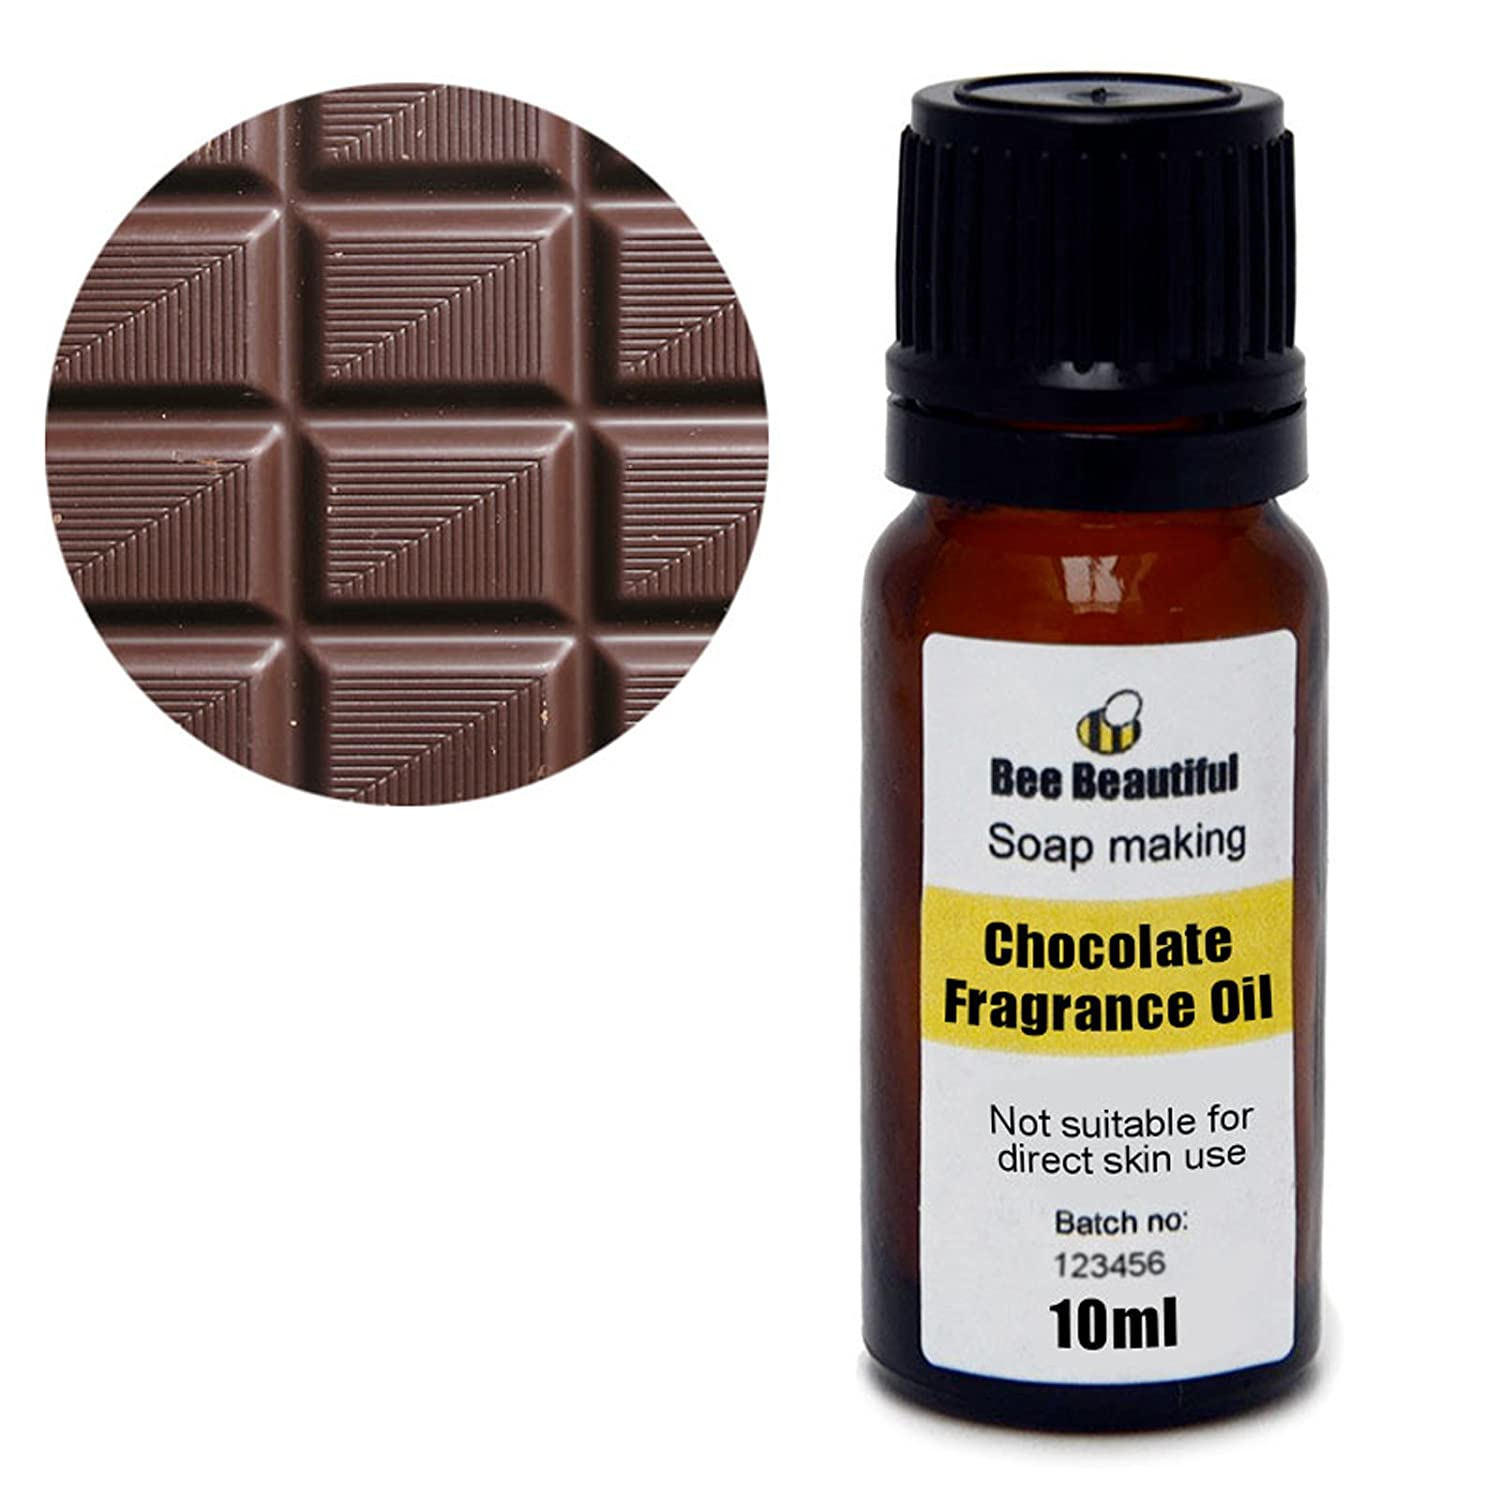 Bee Beautiful 10ml Chocolate Fragrance Oil suitable for soap making & bath bomb making